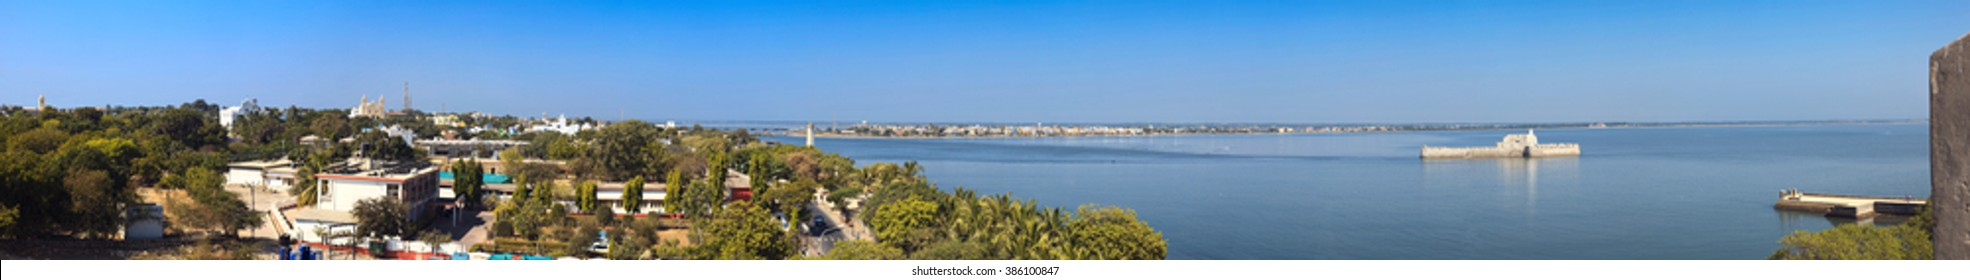 Panoramic view of Diu and Ghoghola from the wall of Diu fort. Diu, India